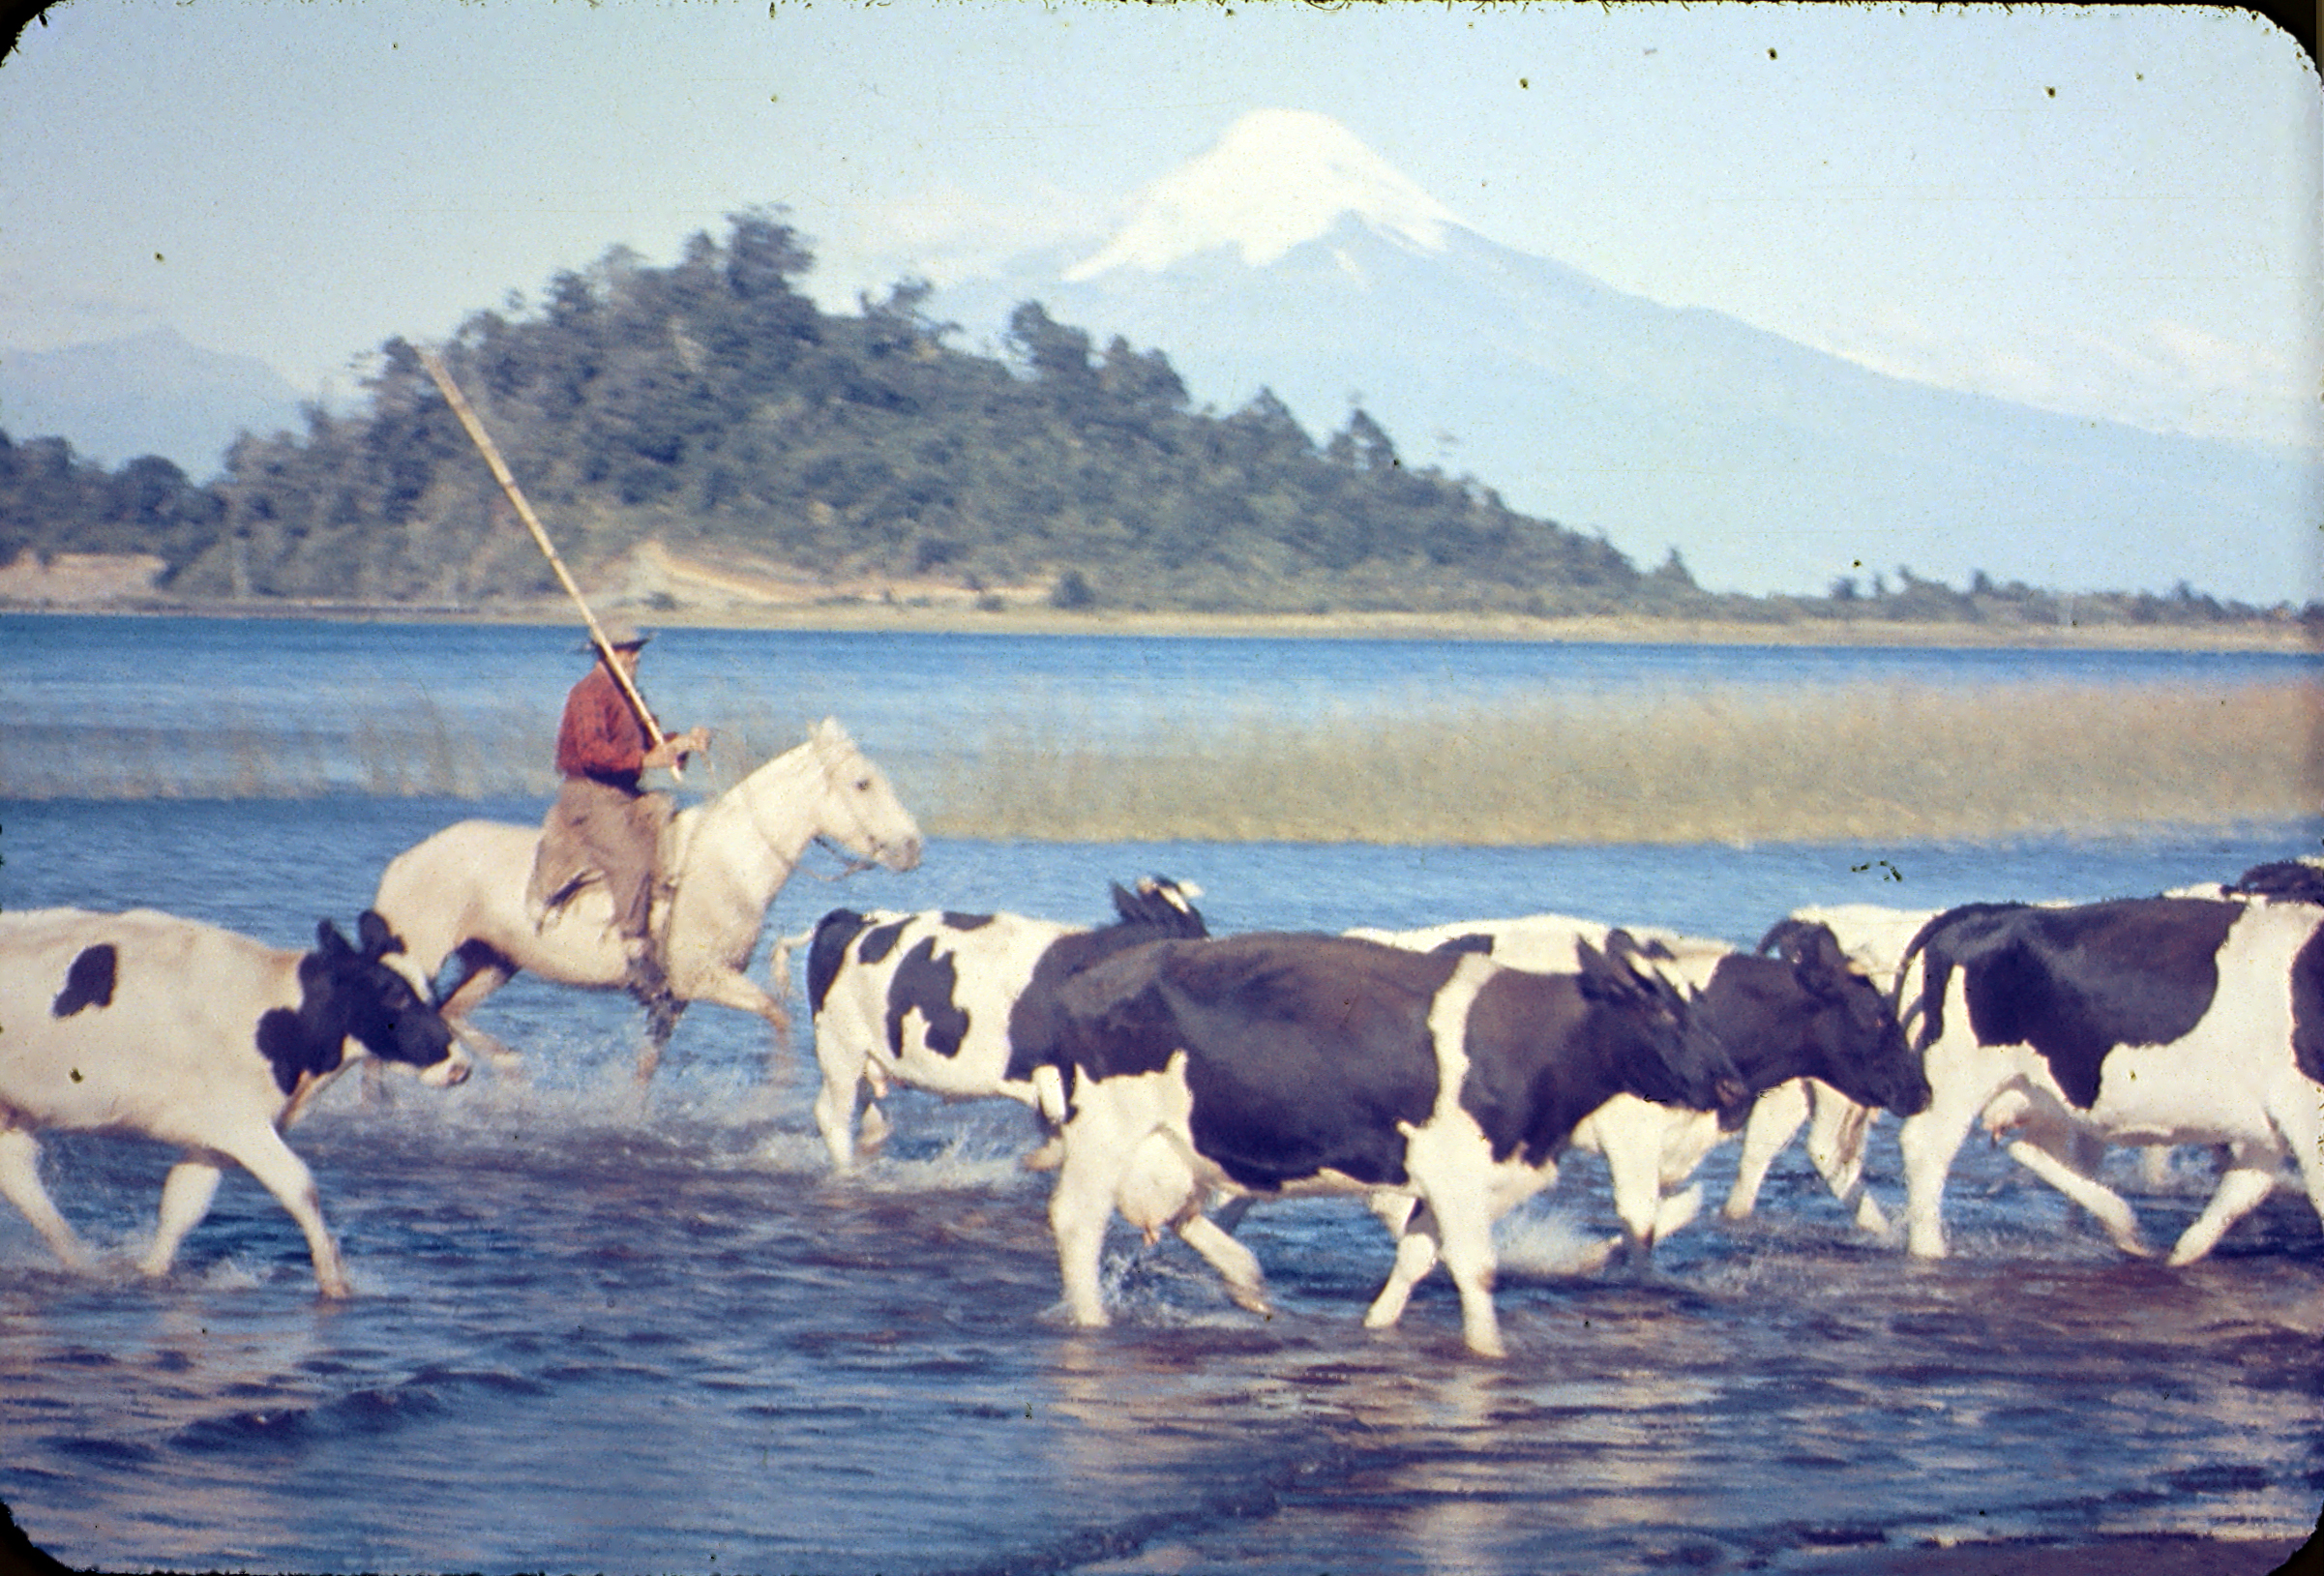 Enterreno - Fotos históricas de chile - fotos antiguas de Chile - Lago Llanquihue, años 60s.